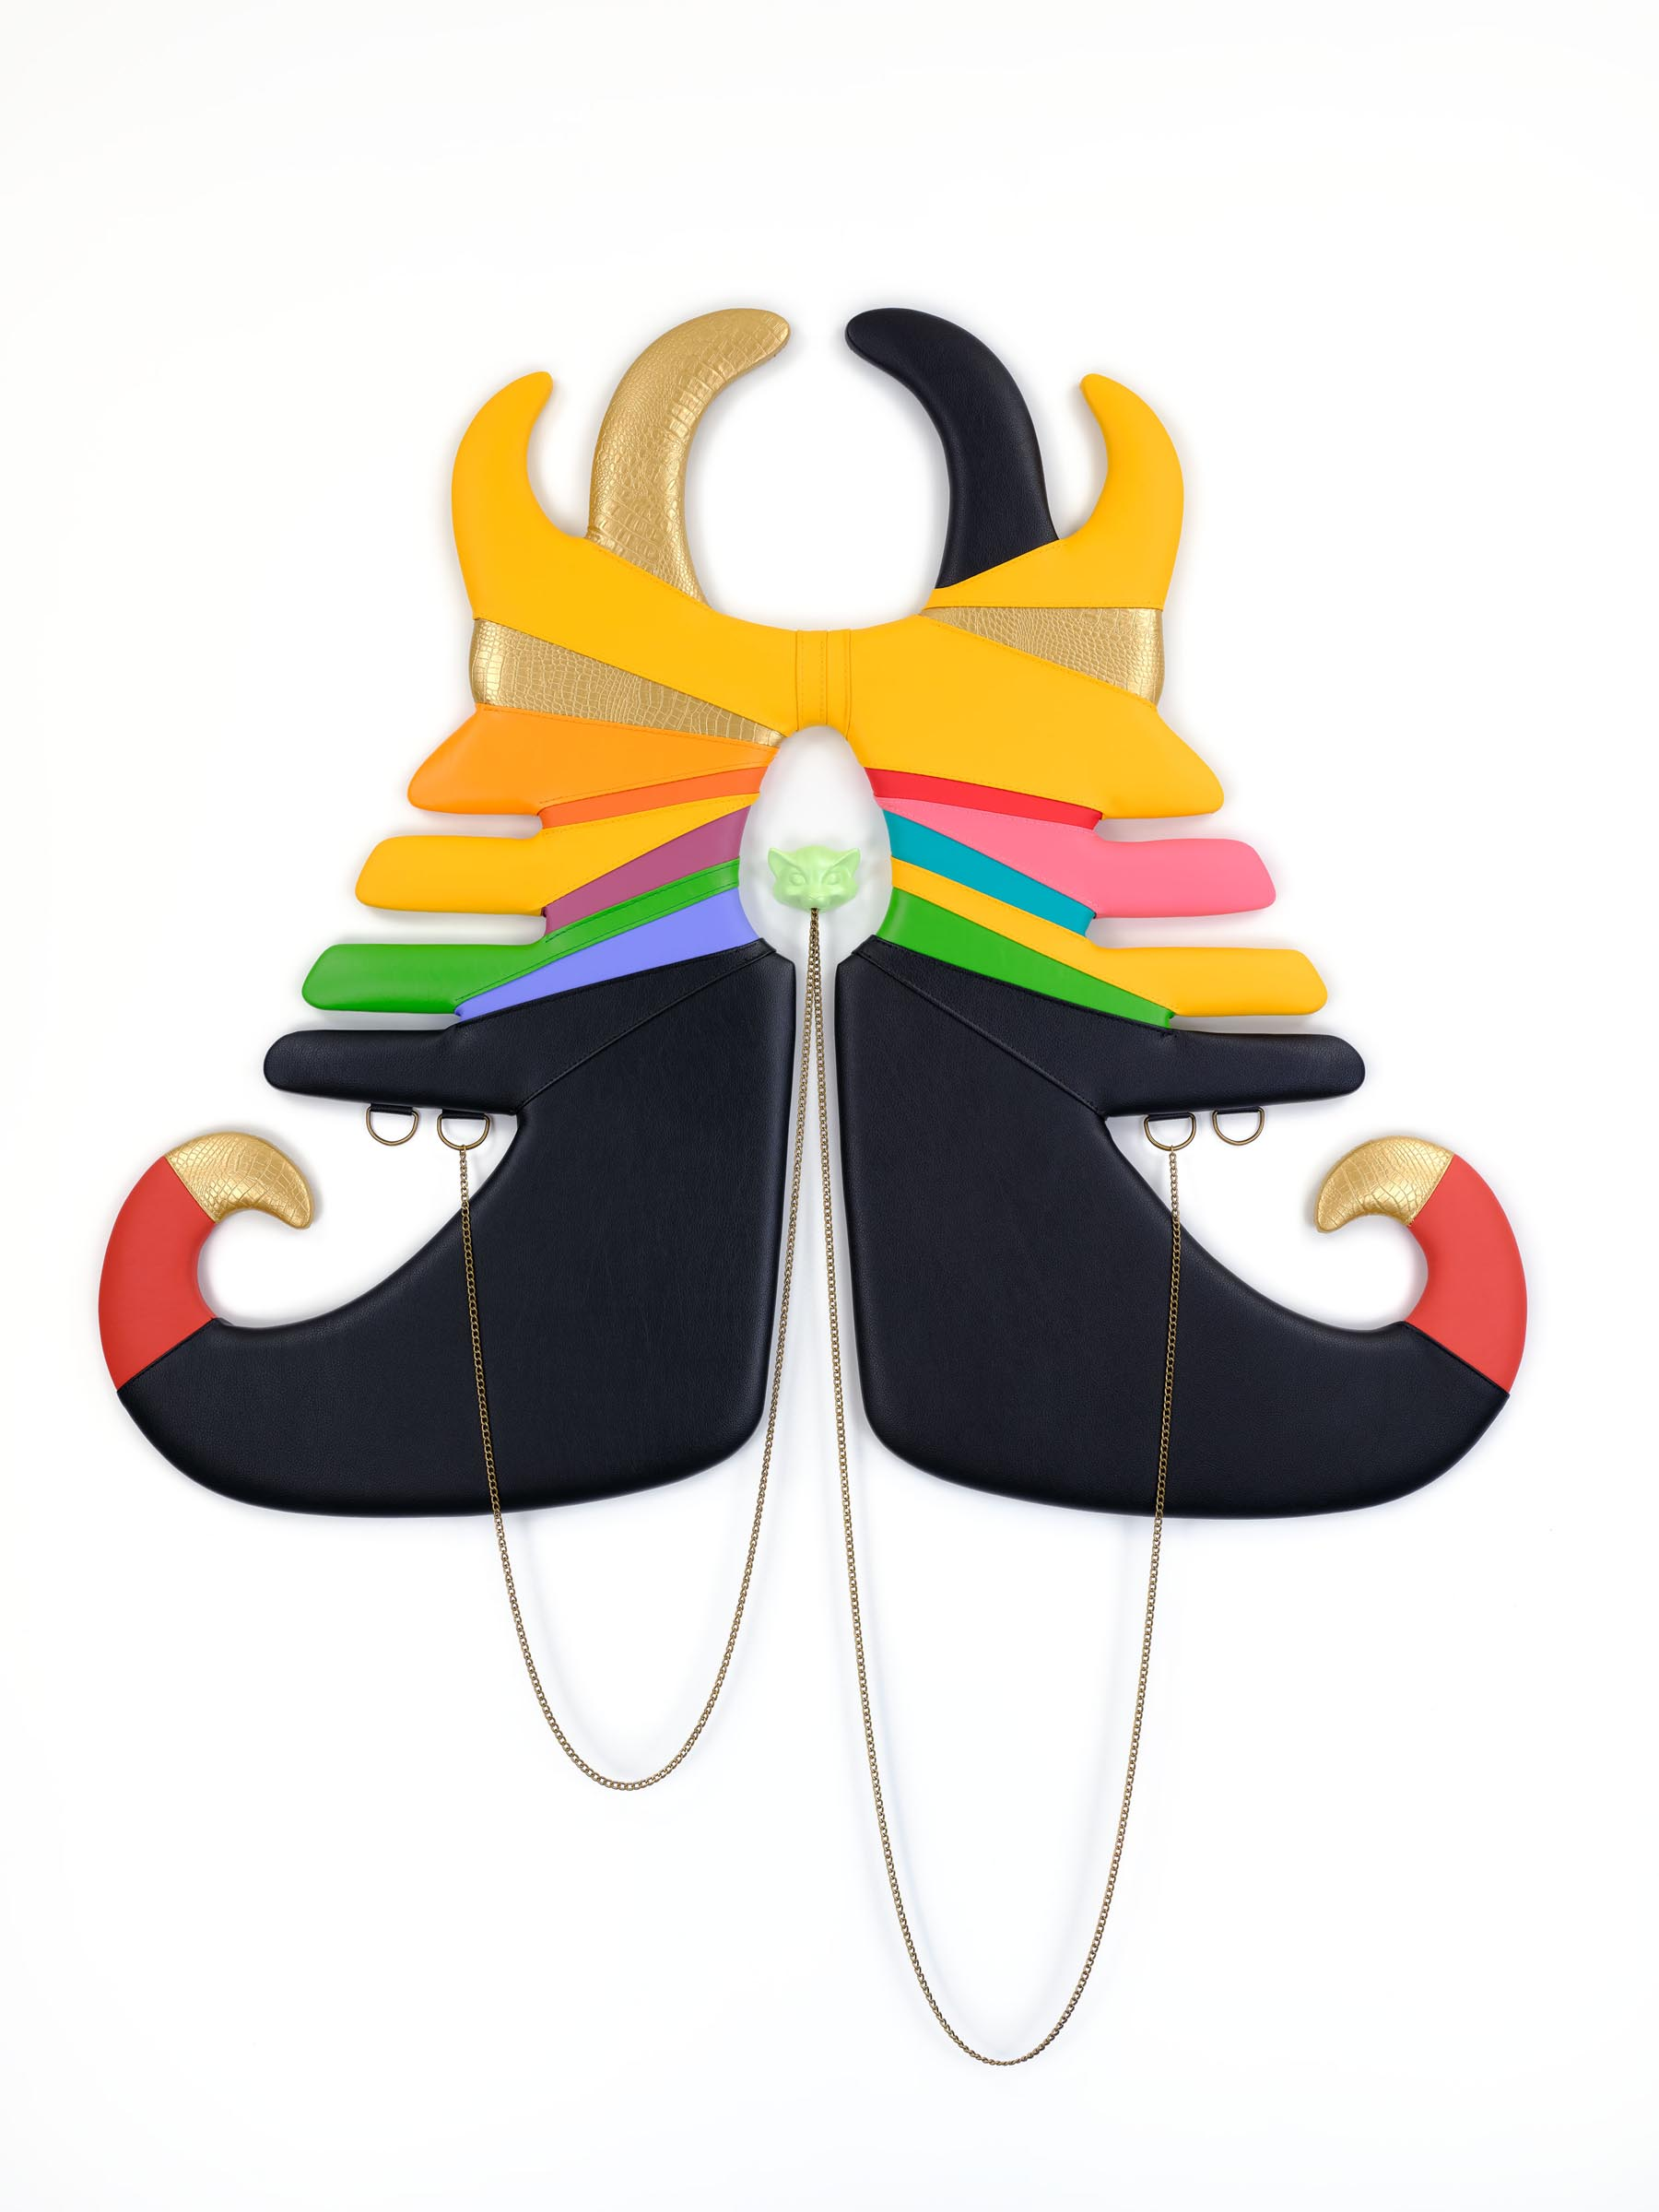 Trish Tillman, Moored--Shift Colors Vinyl, vegan leather, chain, hardware, plaster, acrylic, wood, foam 64